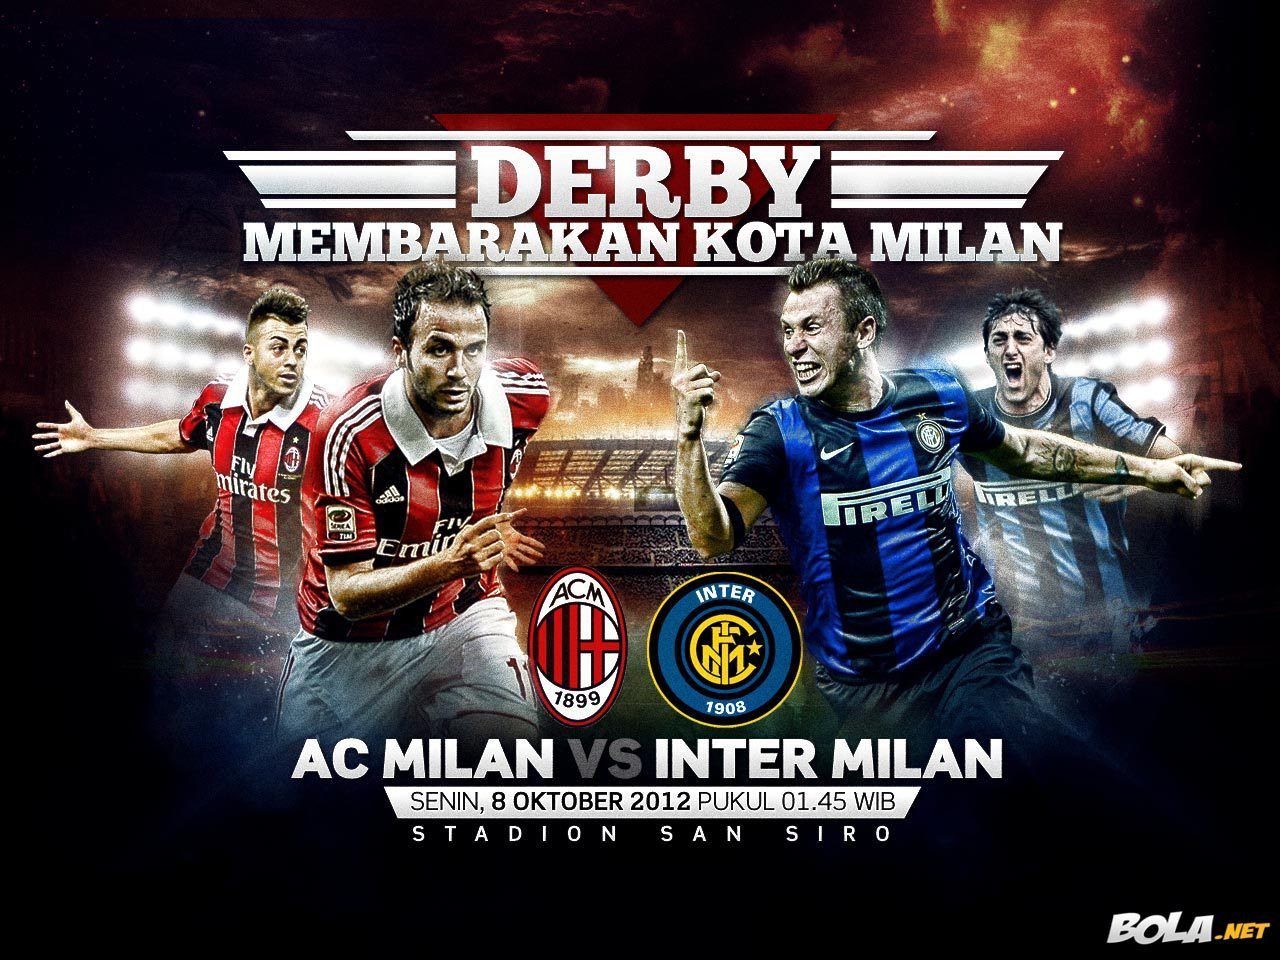 Download Wallpaper Ac Milan Vs Inter Milan Bola Net Inter Milan Ac Milan Milan